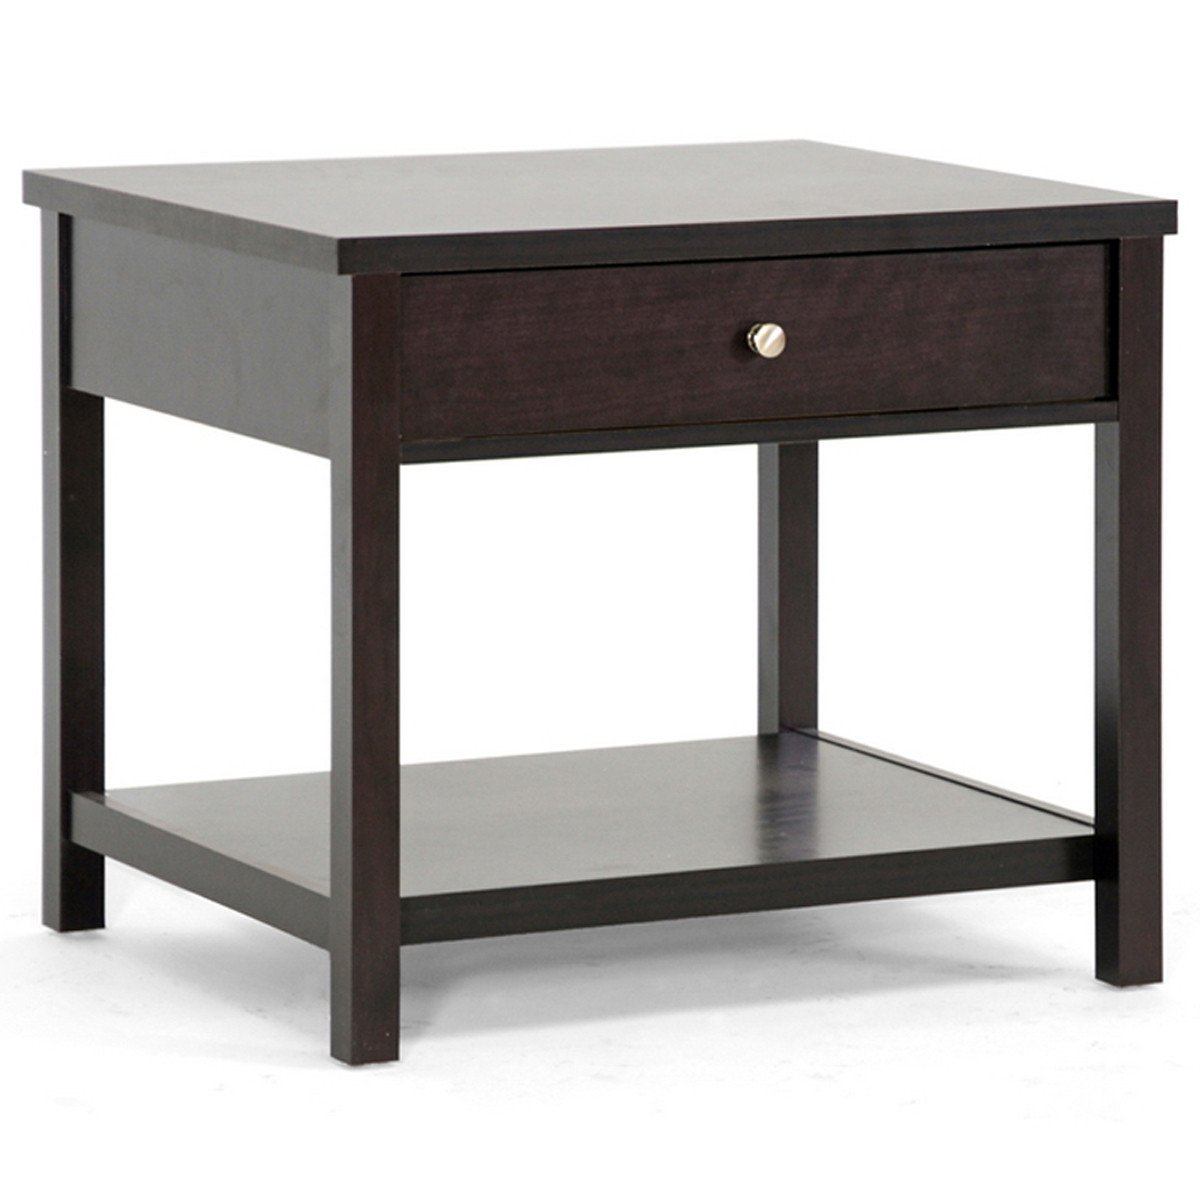 nashua brown modern accent table nightstand fratantoni lifestyles fwi and lamp with usb port long thin side velvet chair telesco legs grey patterned armchair astoria grand bedroom